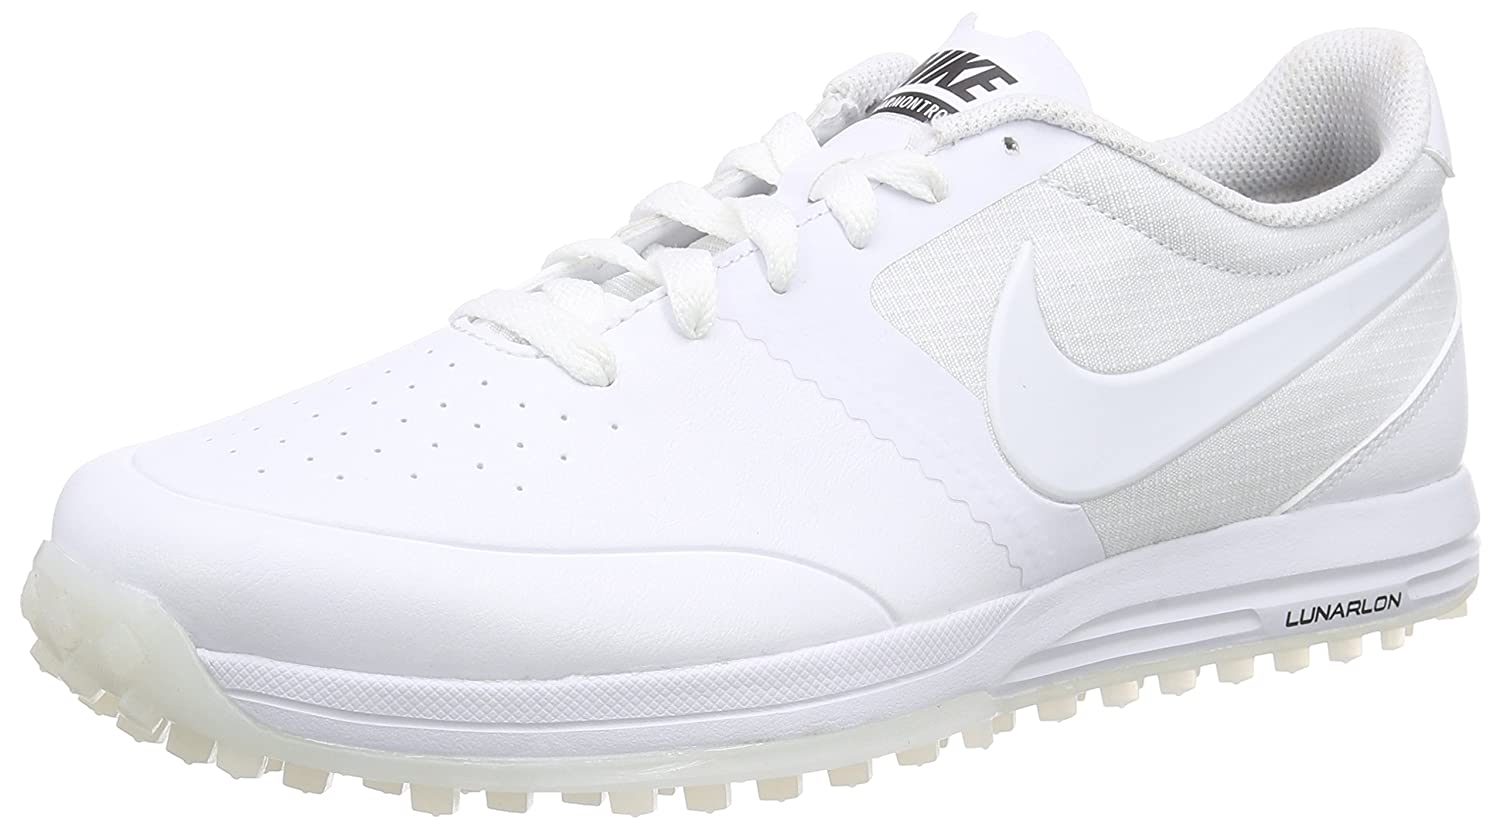 new product 76b69 3a049 Nike Men s s Lunar Mont Royal Golf Shoes White, 6 UK  Amazon.co.uk  Shoes    Bags